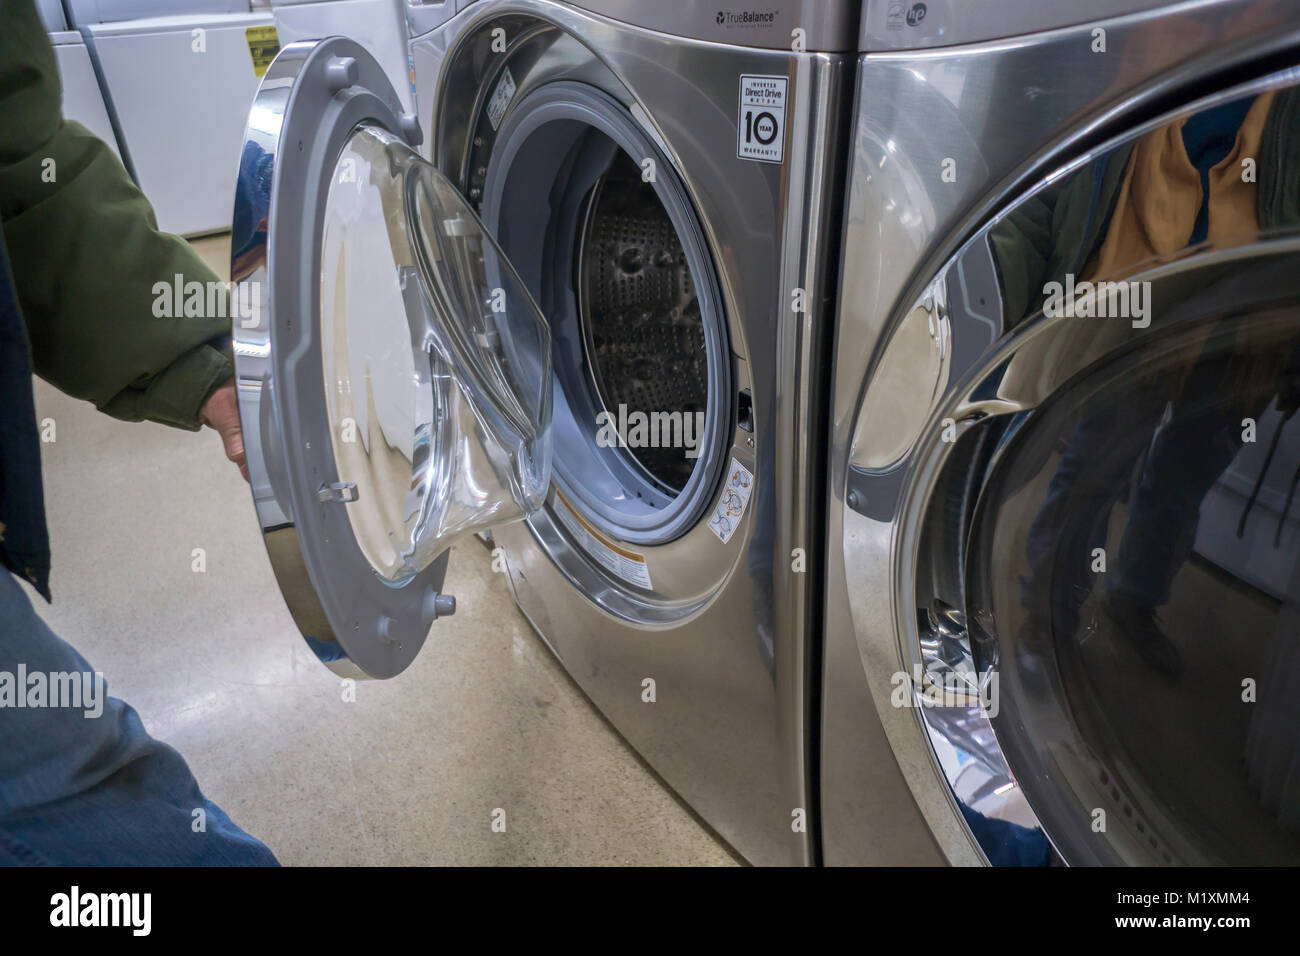 Lg Washing Machine High Resolution Stock Photography And Images Alamy